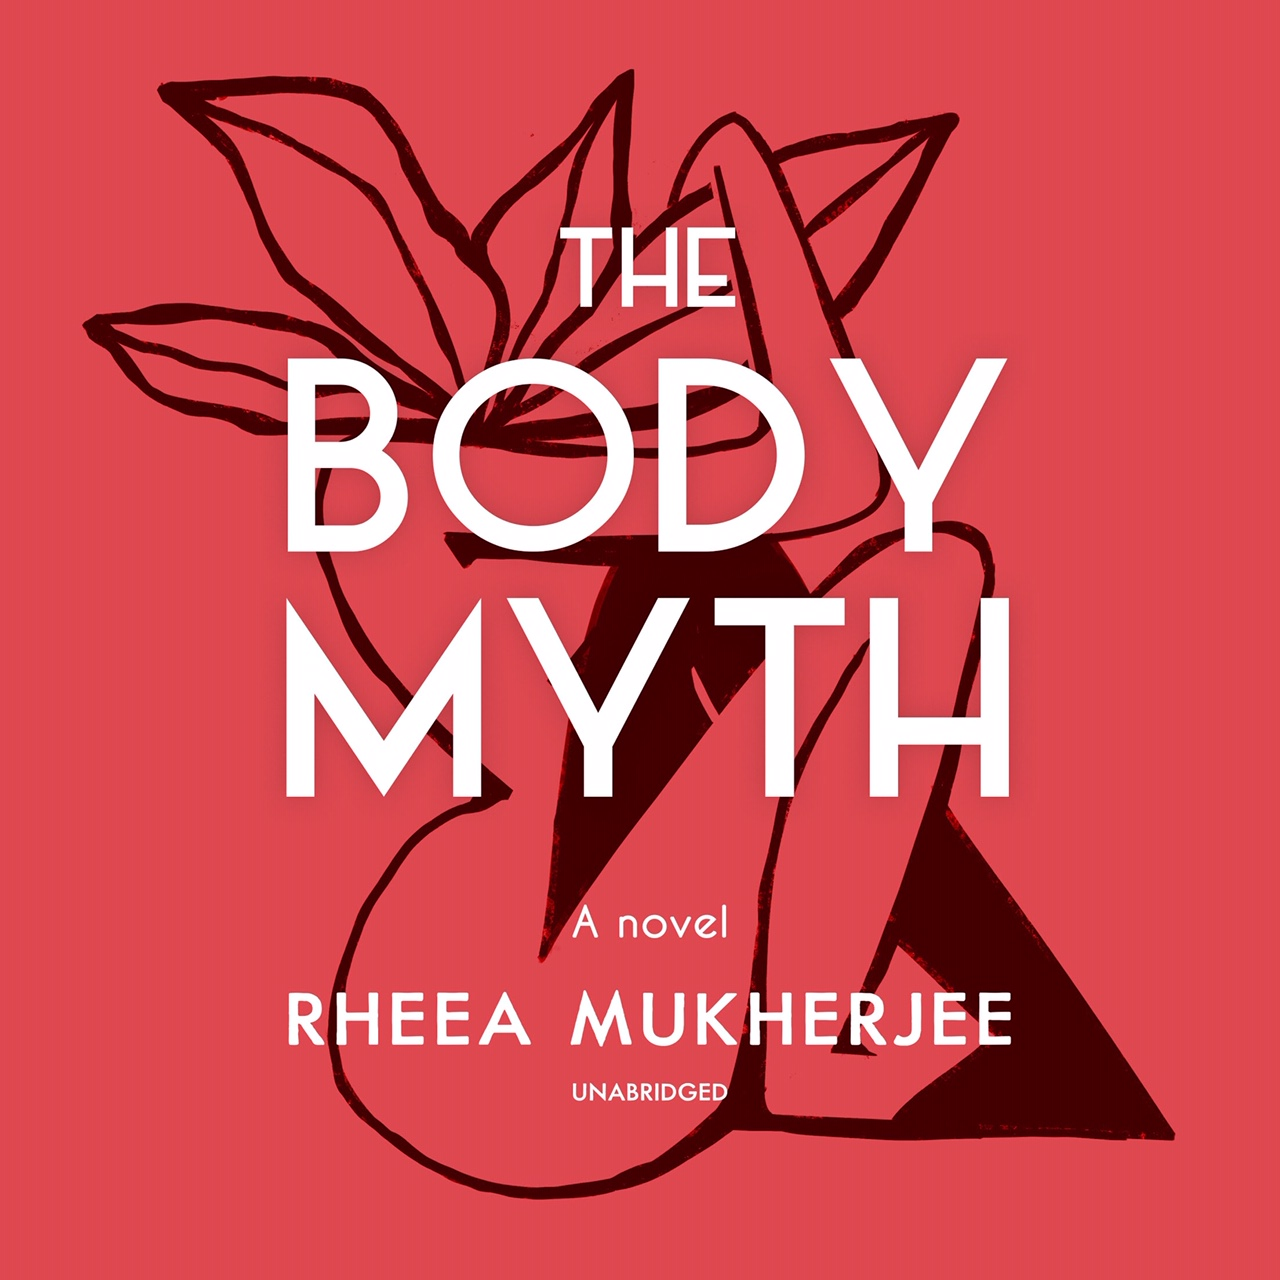 Audiobook cover design for The Body Myth